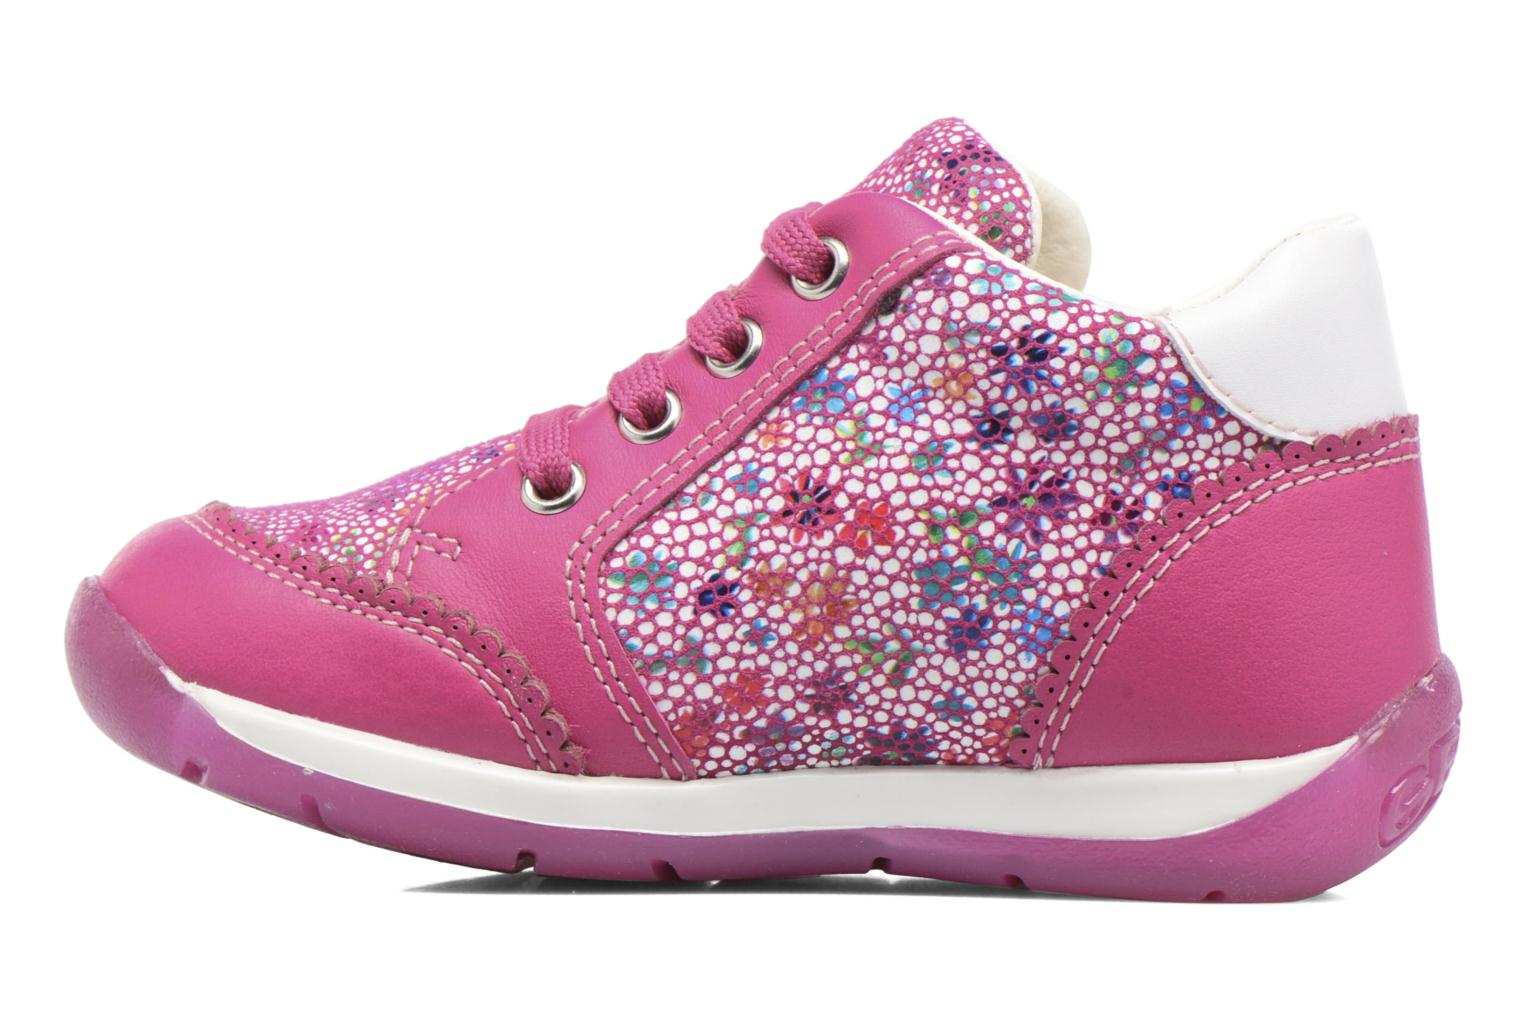 Chaussures à lacets Geox B Each G. C B720AC Rose vue face